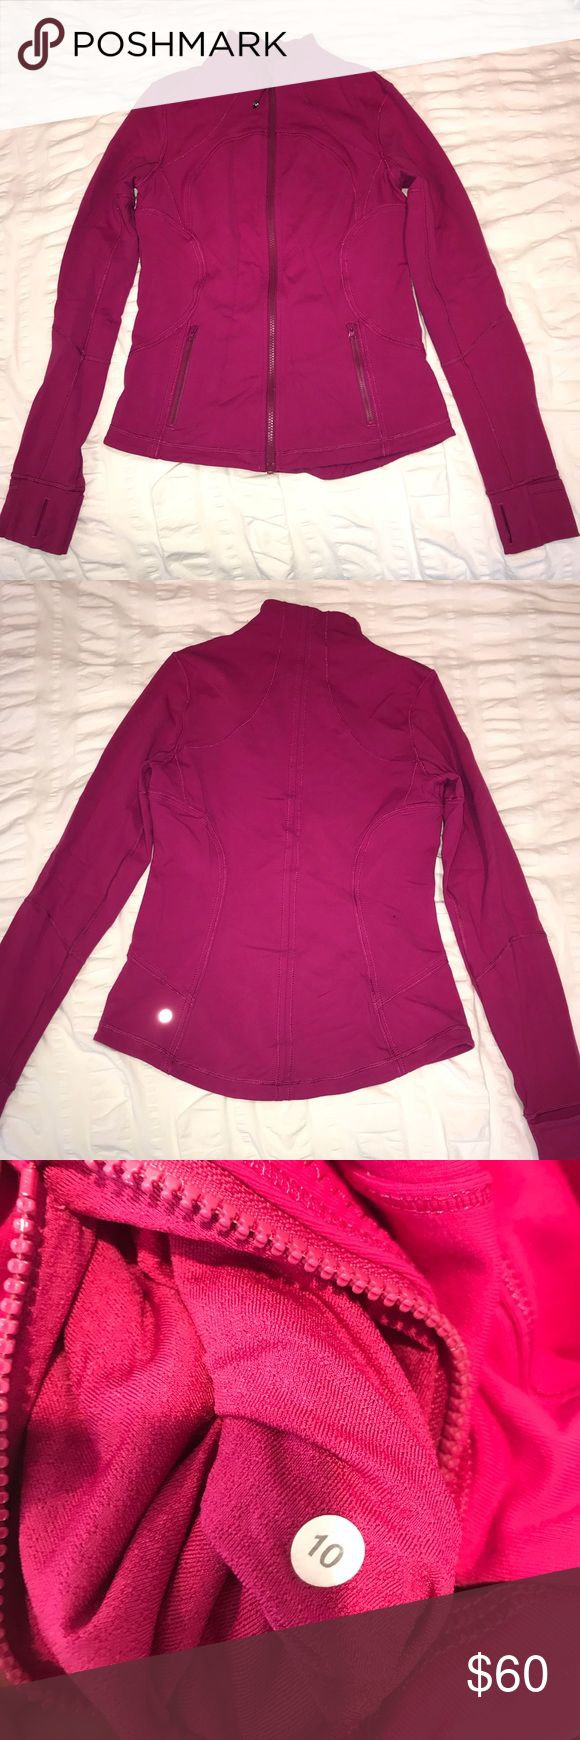 Lightweight Lululemon Zip-Up Jacket Lululemon zip up jacket (lightweight). Women's size 10, pink/magenta color. Very lightly used (only worn a couple times)!! Open to price negotiations!! lululemon athletica Jackets & Coats